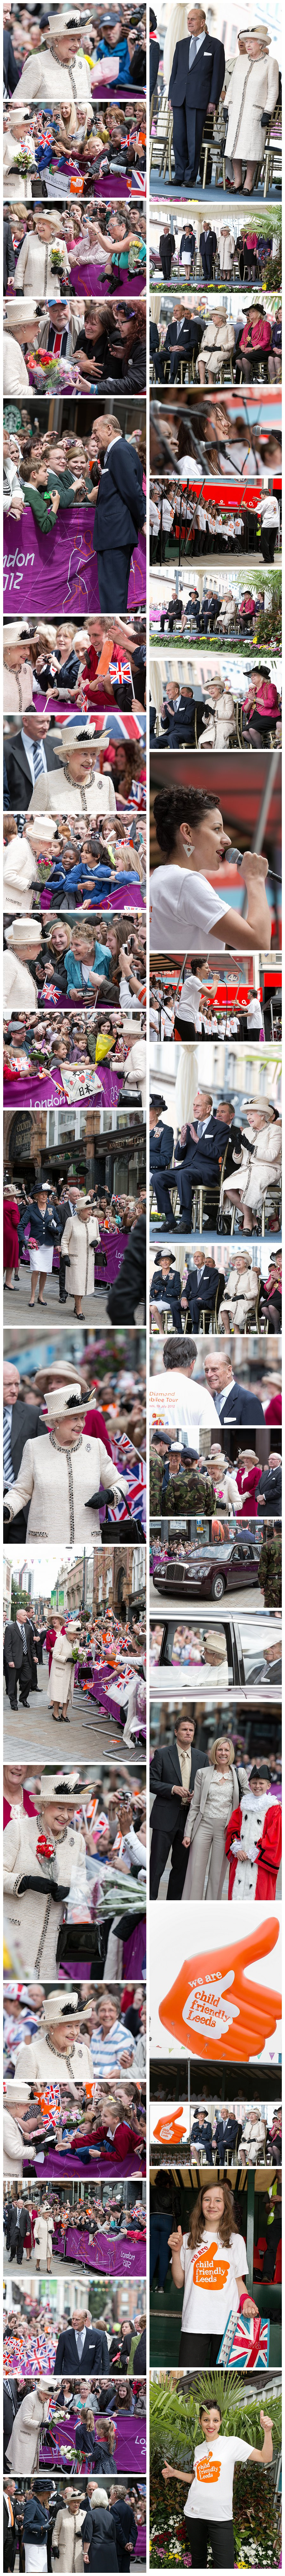 photography Leeds, top photographers Leeds, Royal visits to Leeds, diamond jubilee